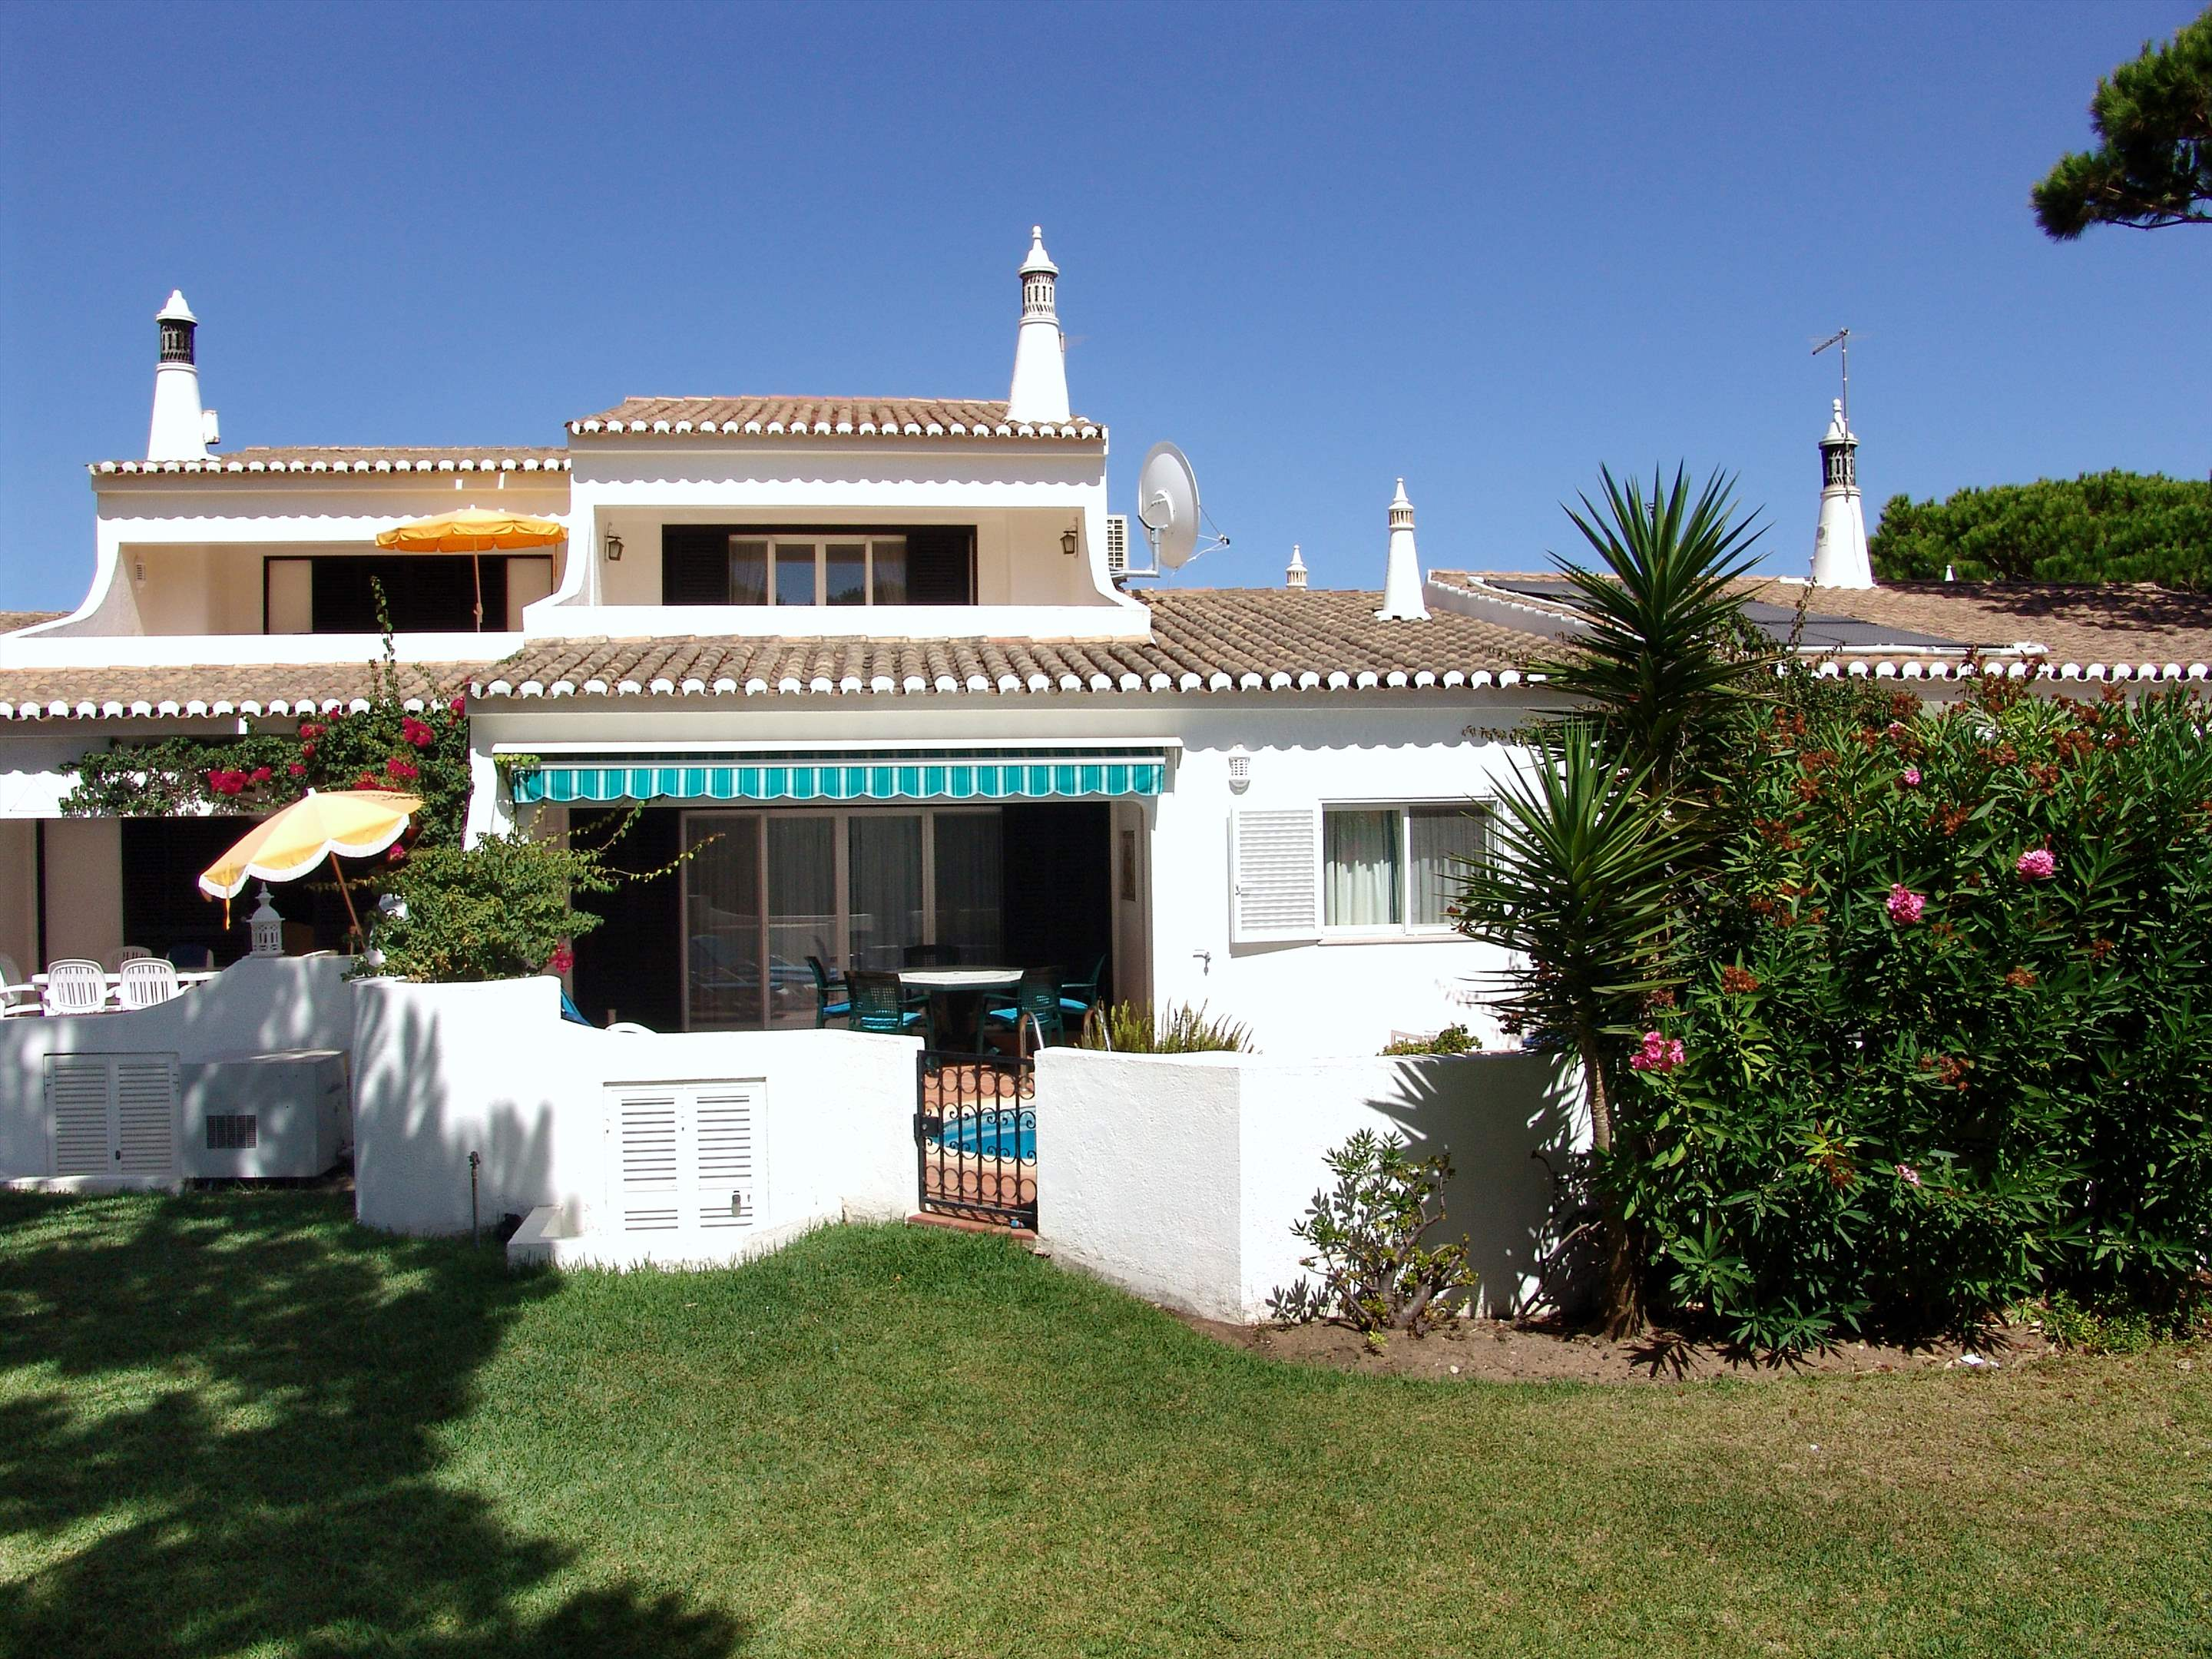 Villa Mimosa 9, 3 bedroom villa in Vale do Lobo, Algarve Photo #20